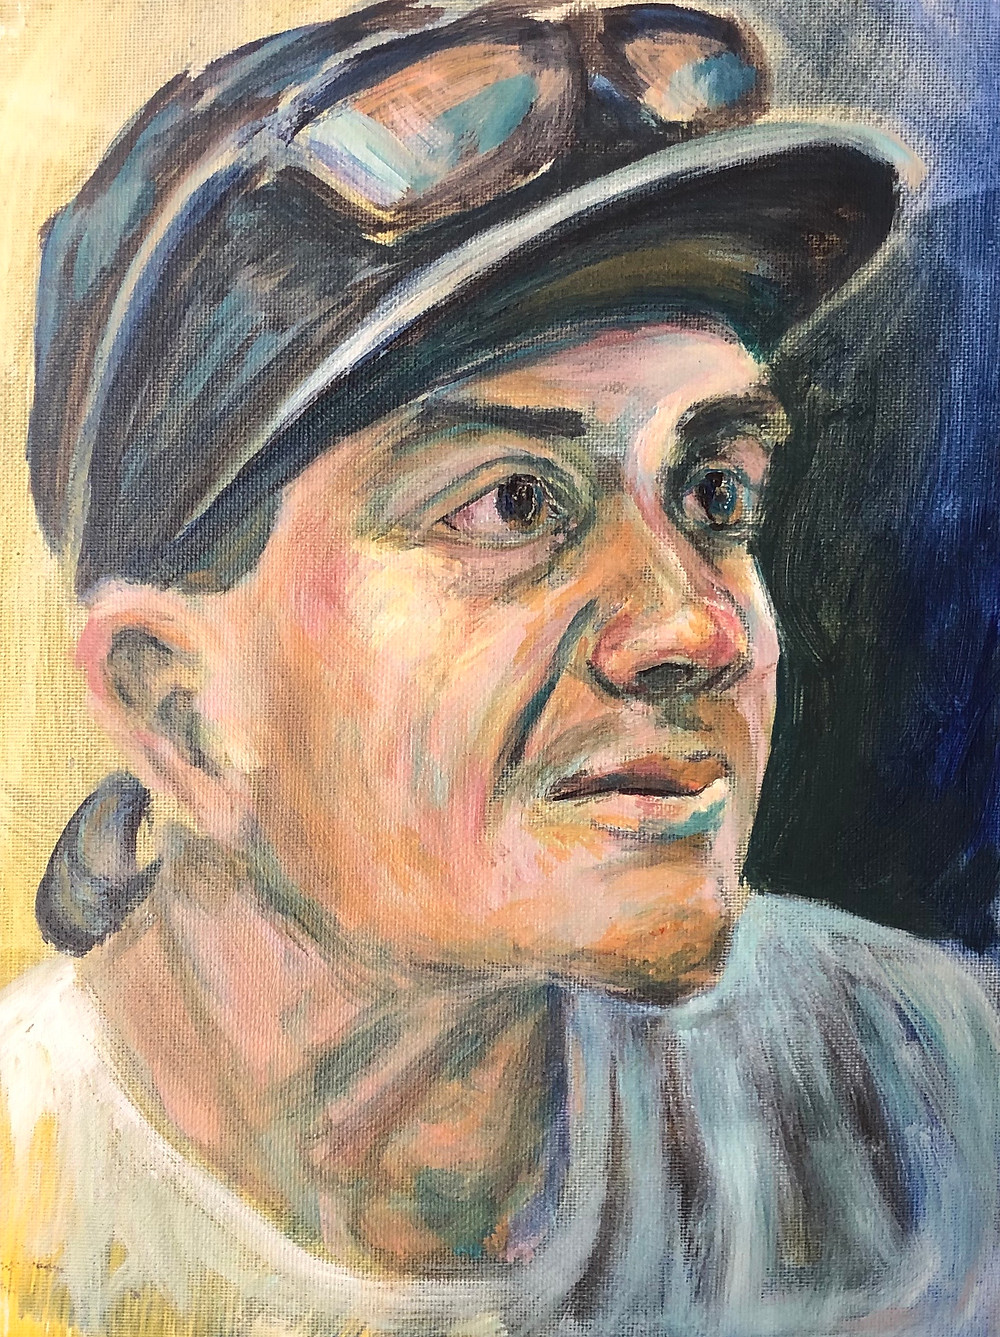 Acrylic portrait of a young man wearing a black ball cap with sunglasses resting on the brim.